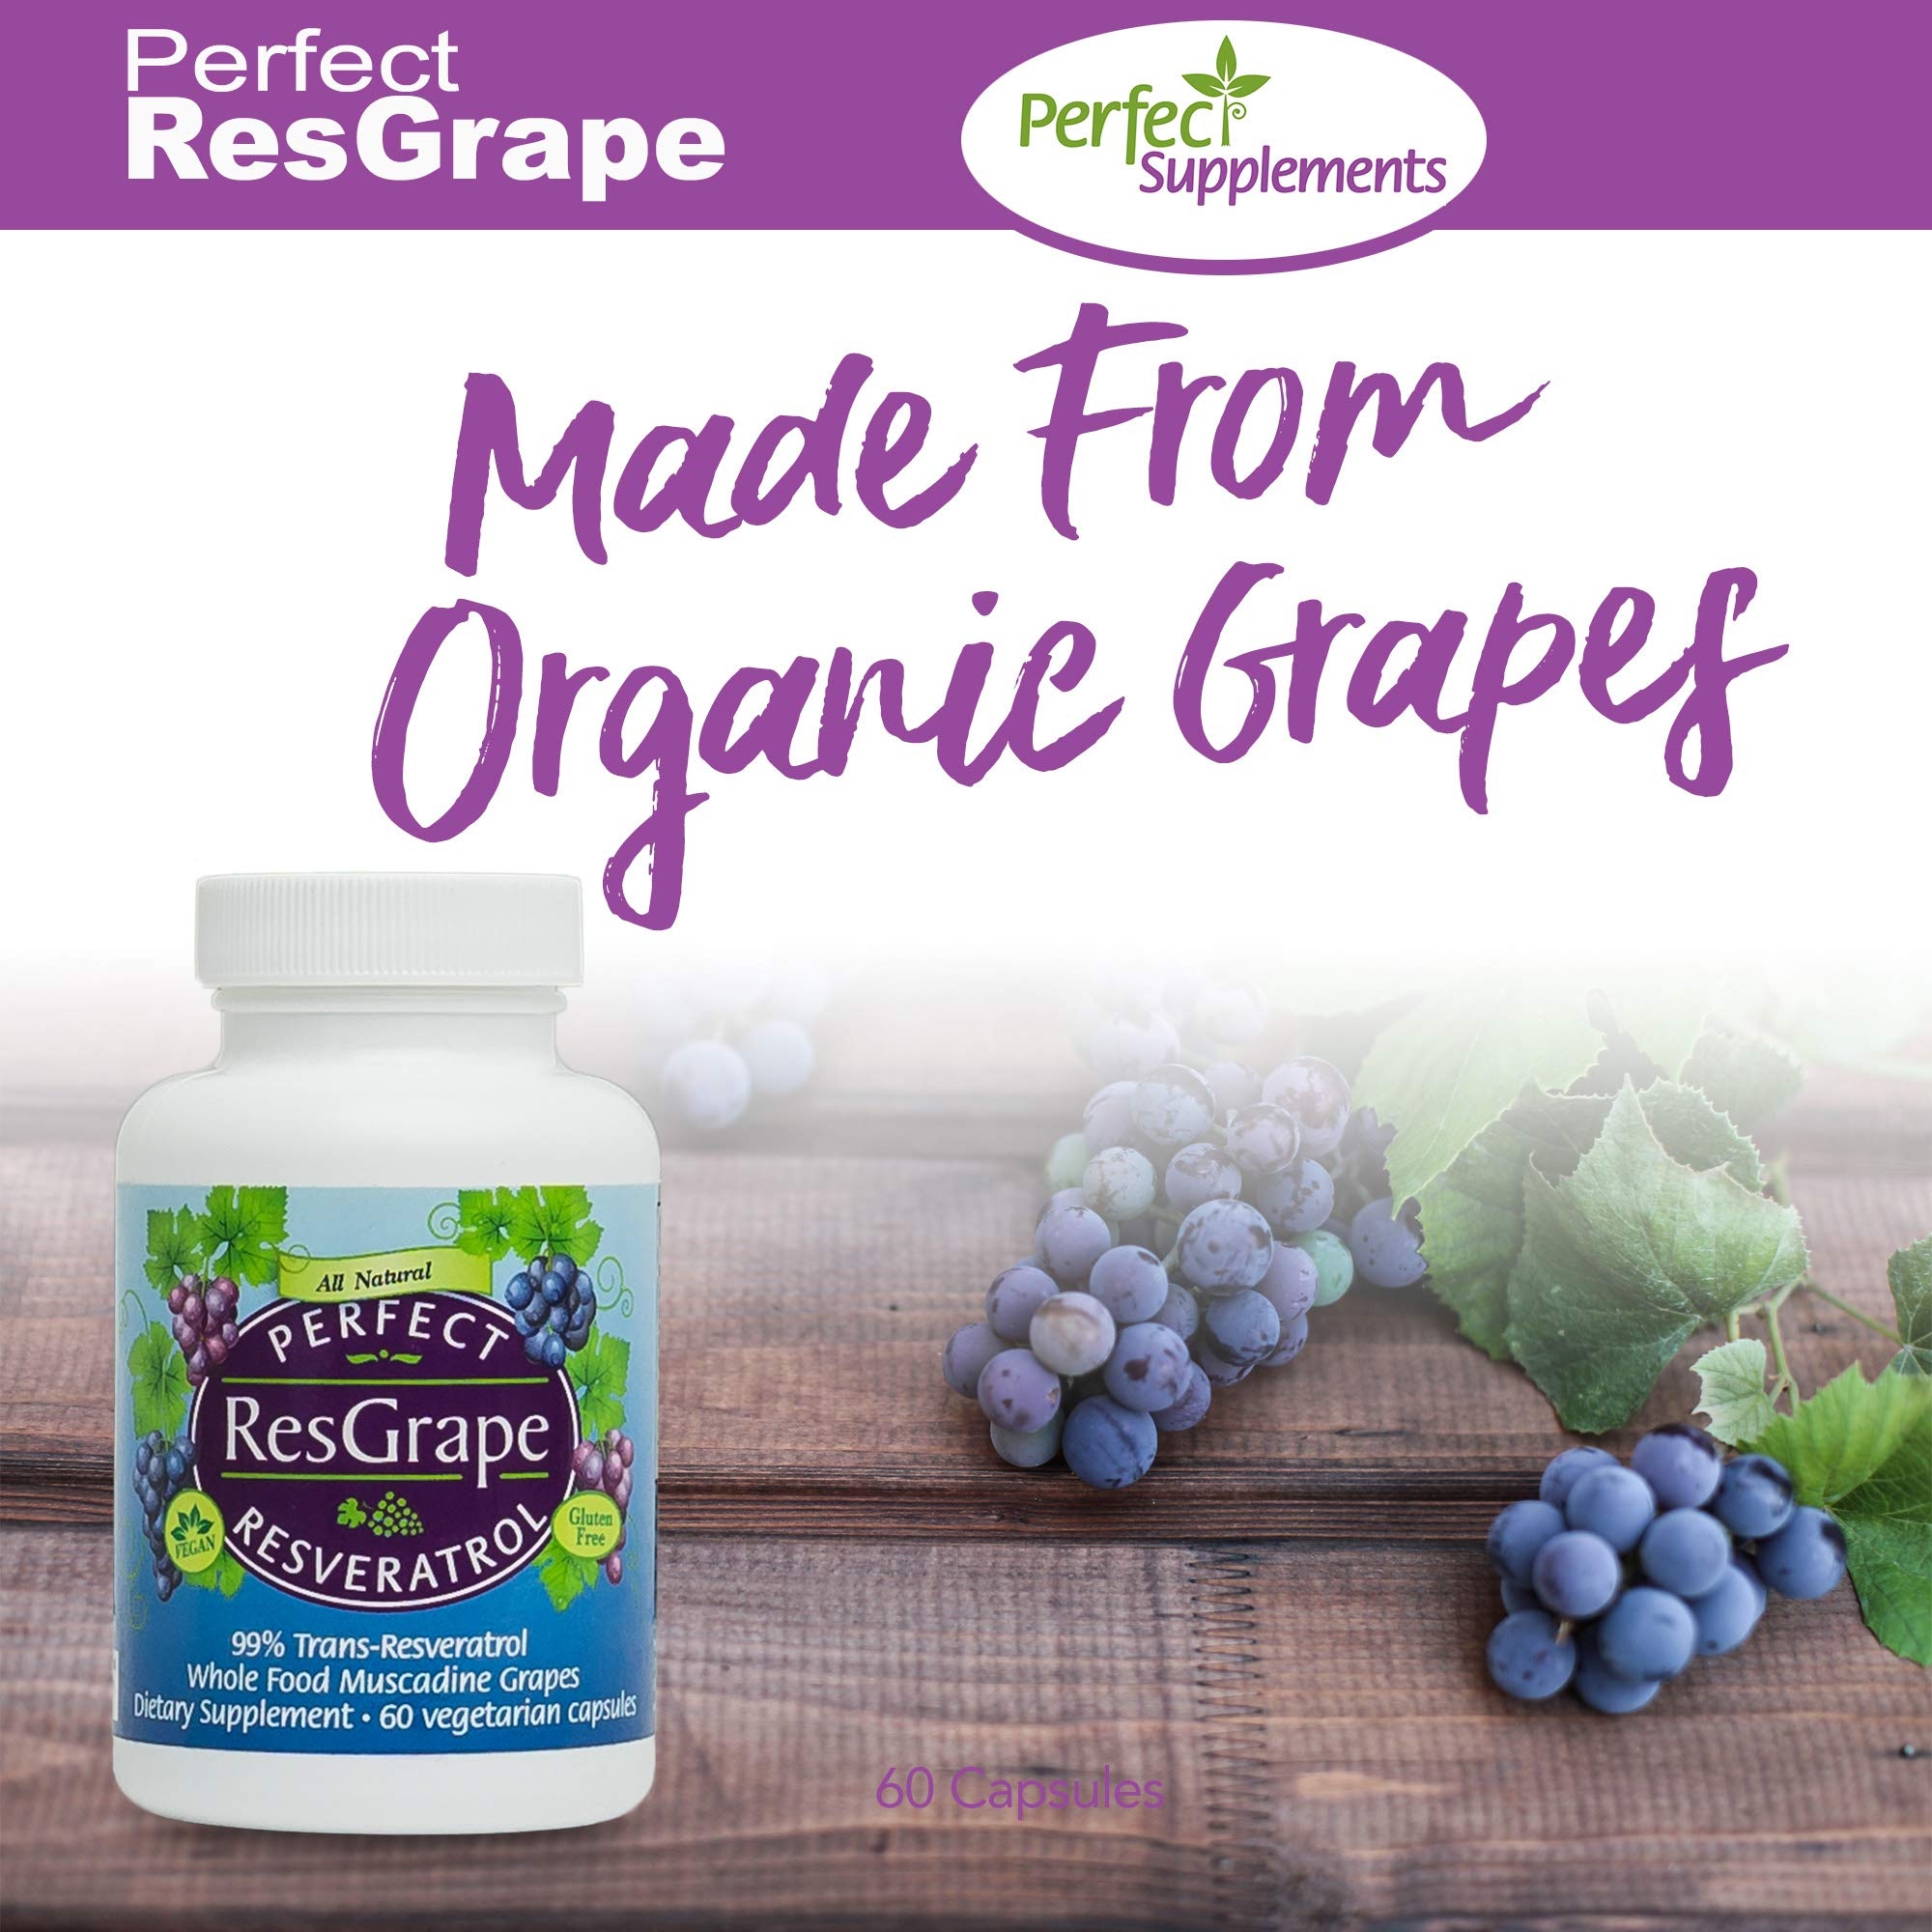 Perfect Resgrape Resveratrol Supplement - 200mg 99% Trans-Resvertarol - Made From Organic Muscadine Grapes - 60 Vegetable Capsules by Perfect Supplements (Image #5)